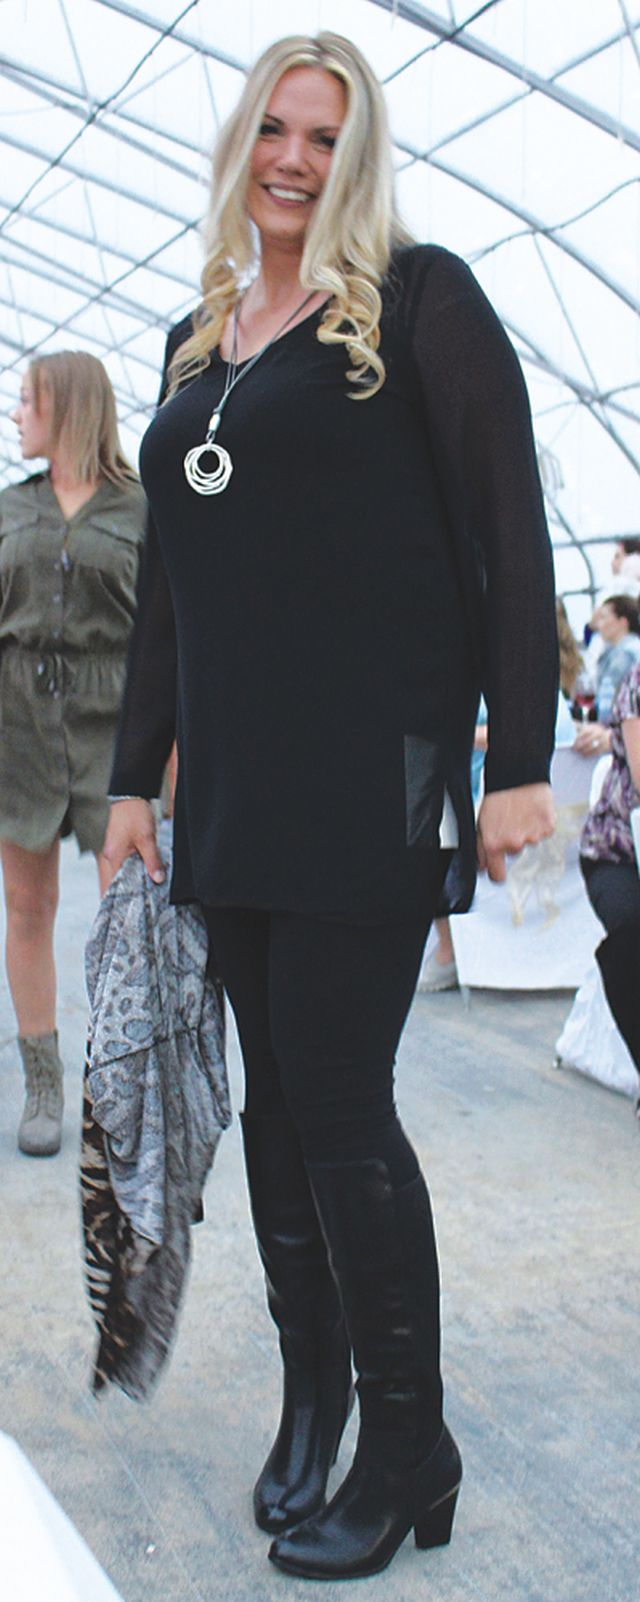 Kristin Rich keeping it real in an all black ensamble with a tiger print cardigan! MEOW!